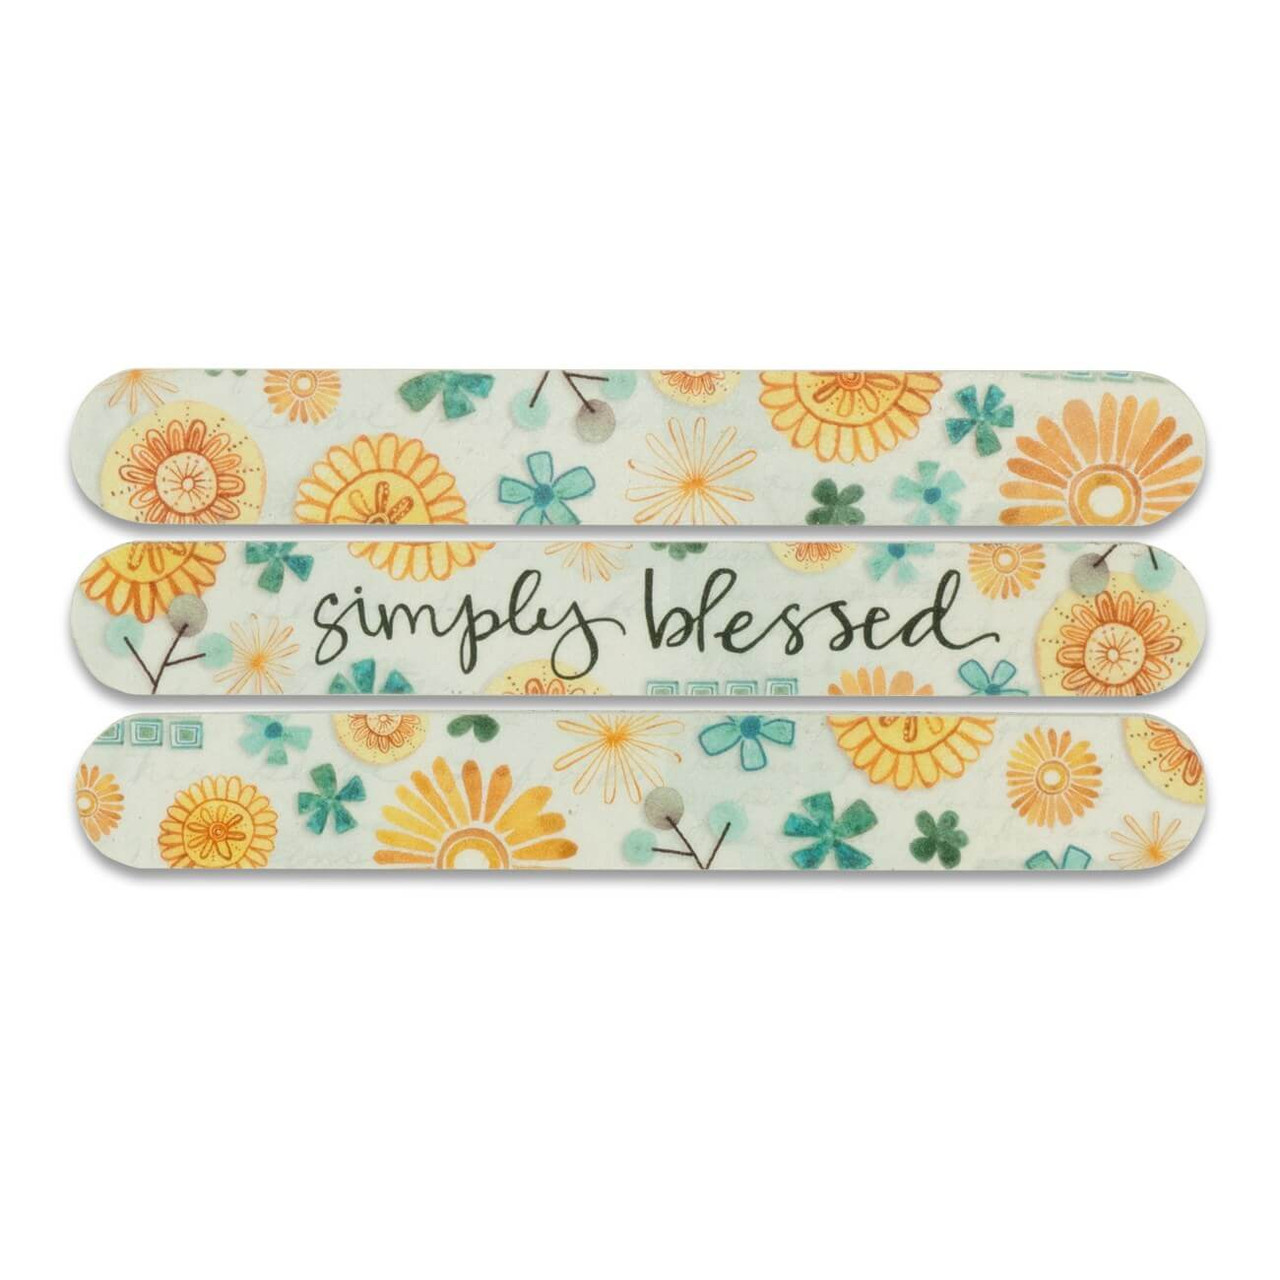 """Salon-style emery boards come in a 3-pack variety of fun, floral artwork and colors with a sweet inspirational message on the center board. The longer length and foam make them comfortable for the hand, and perfect for filing nails on both hands and feet. Featuring artwork by Katie Doucette.  simply blessed sentiment on both sides Individual board measures 1"""" wide x 6"""" long 3 boards per pack 2-sided high quality abrasive material Cushioned foam center Clear protective sleeve"""